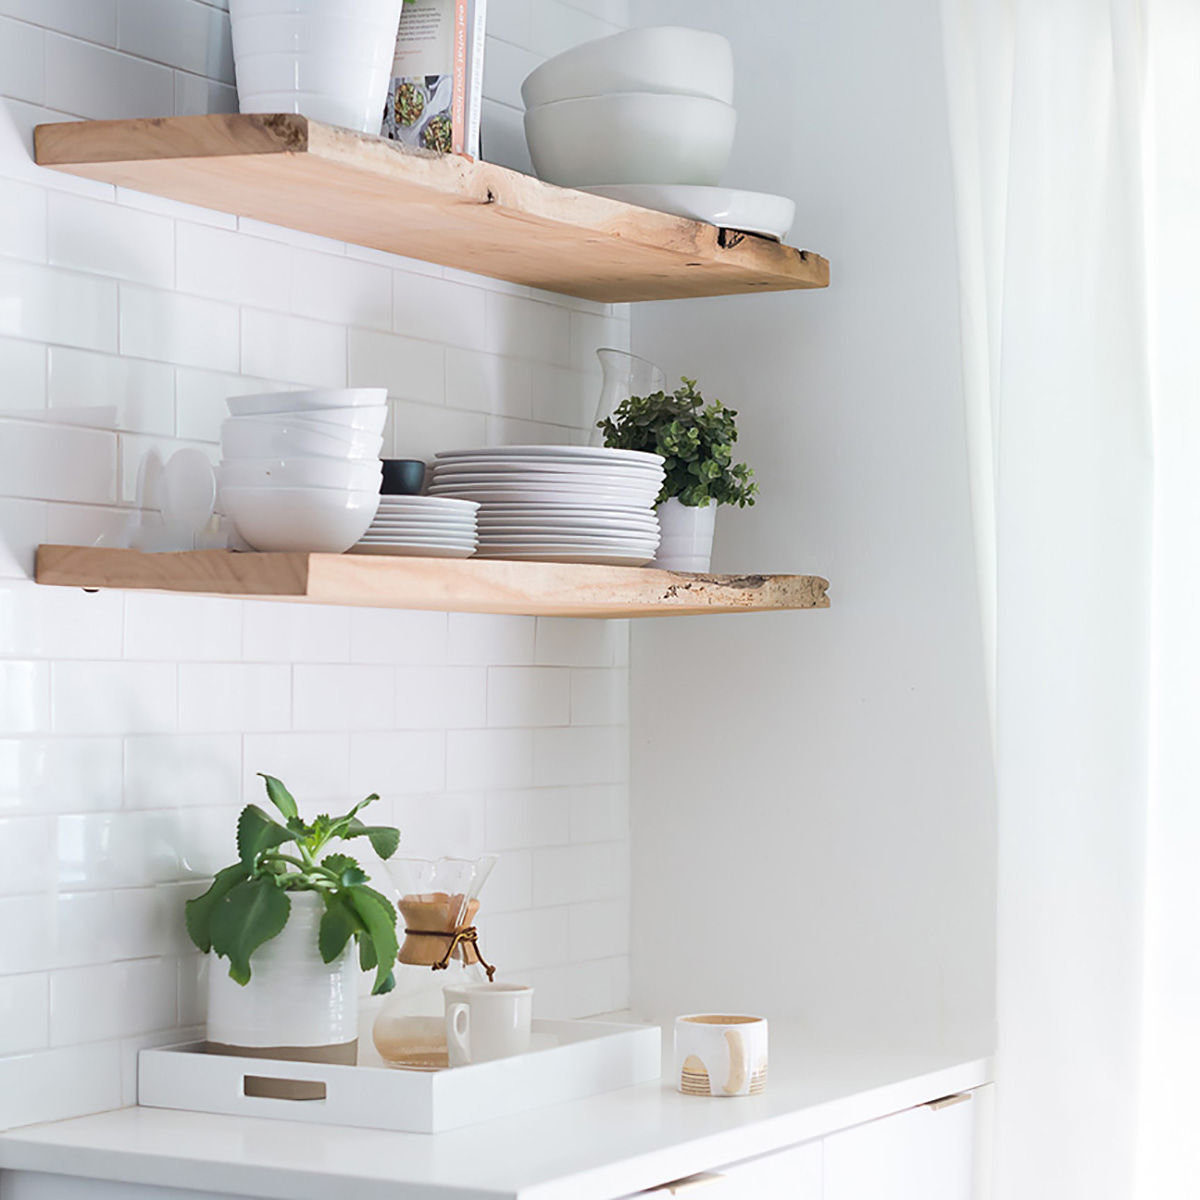 Wooden kitchen shelves with dishware, cookbooks, and plants in all natural, warm kitchen